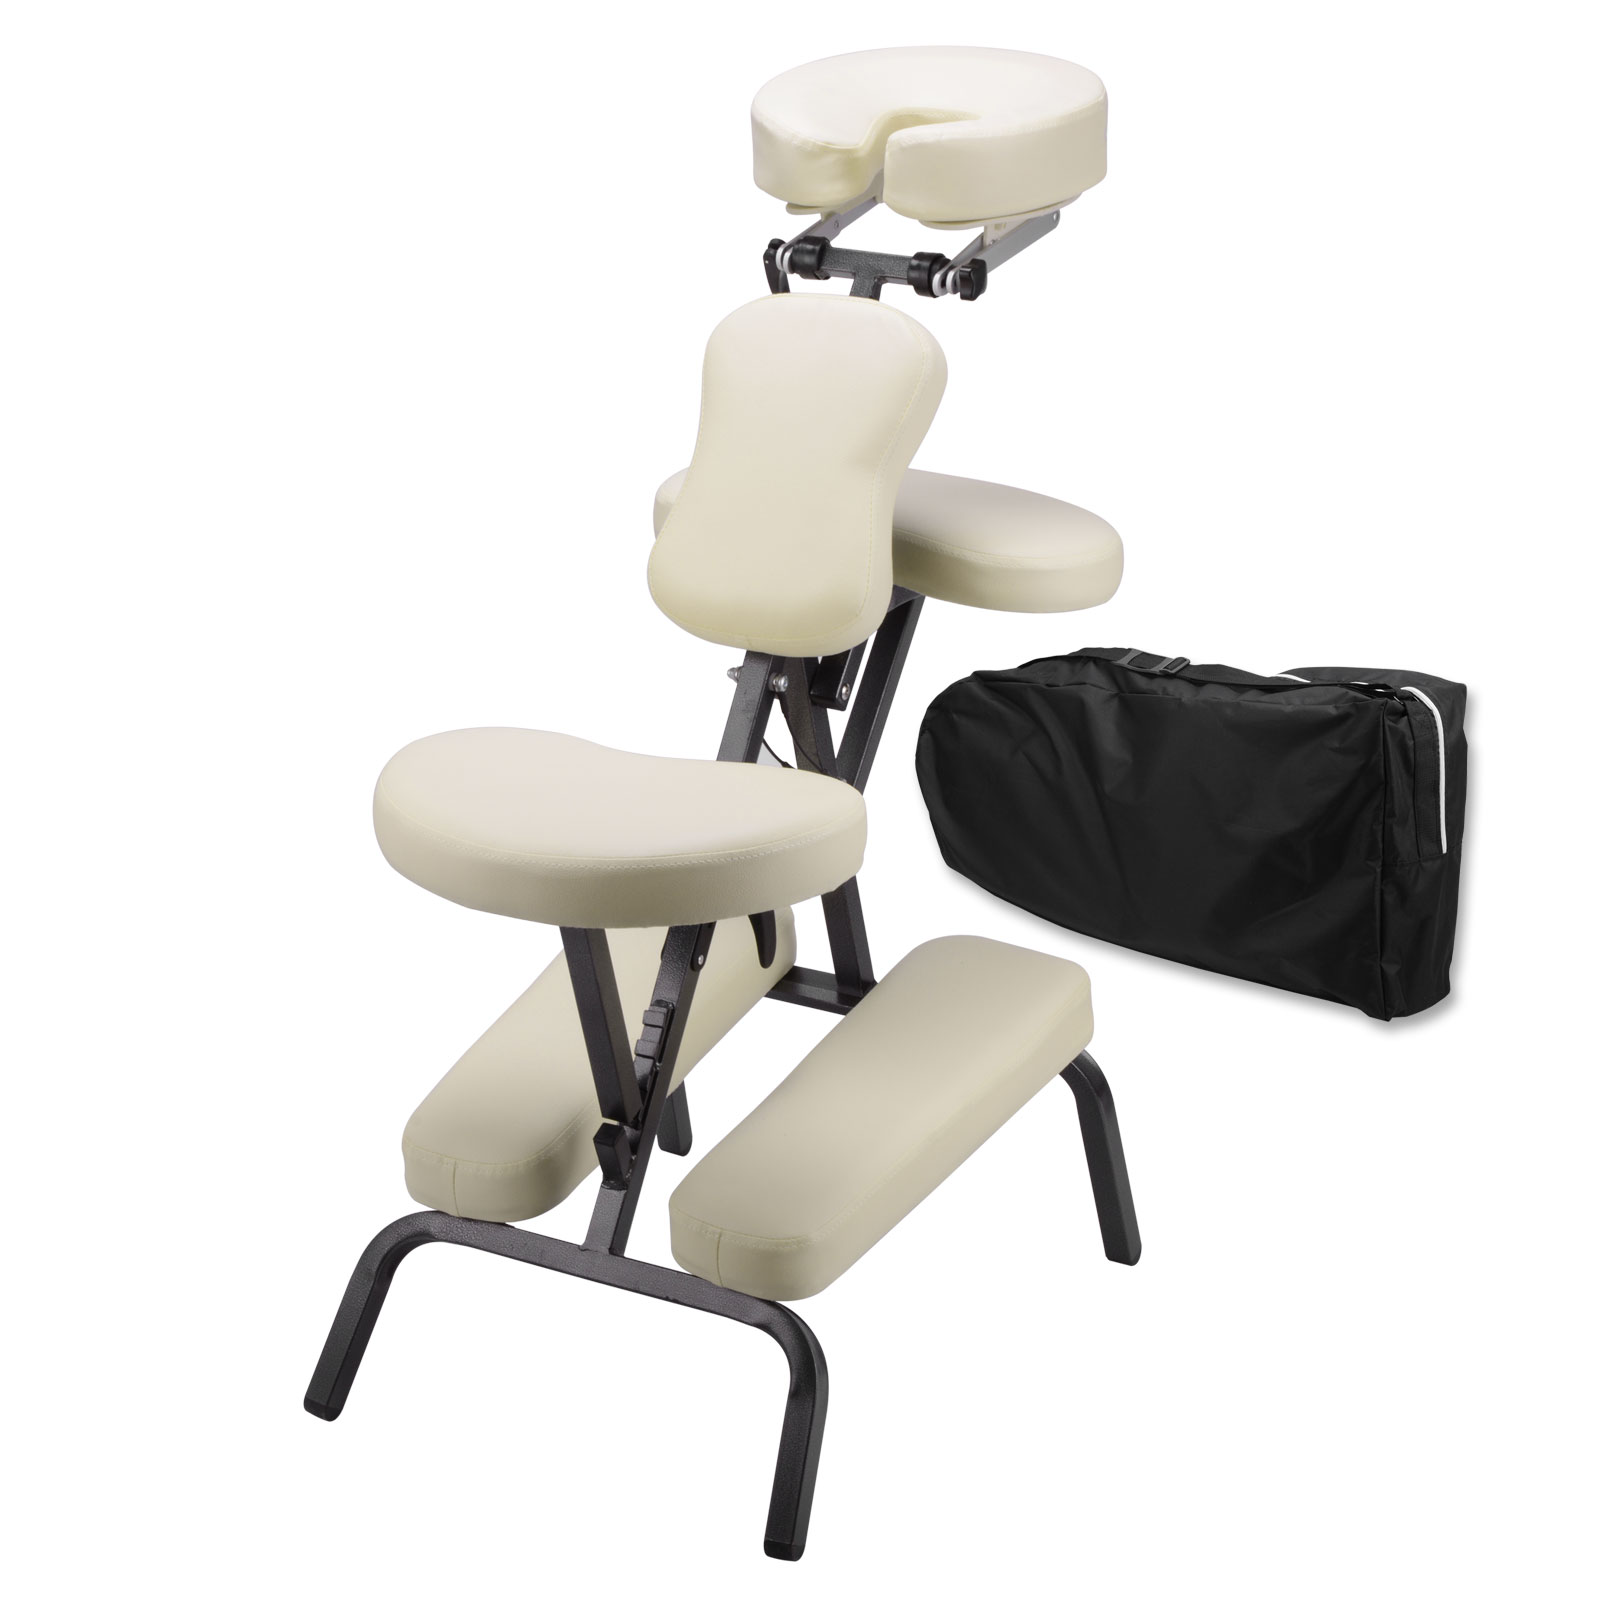 Portable Massage Chair Lightweight Folding Indian Therapy